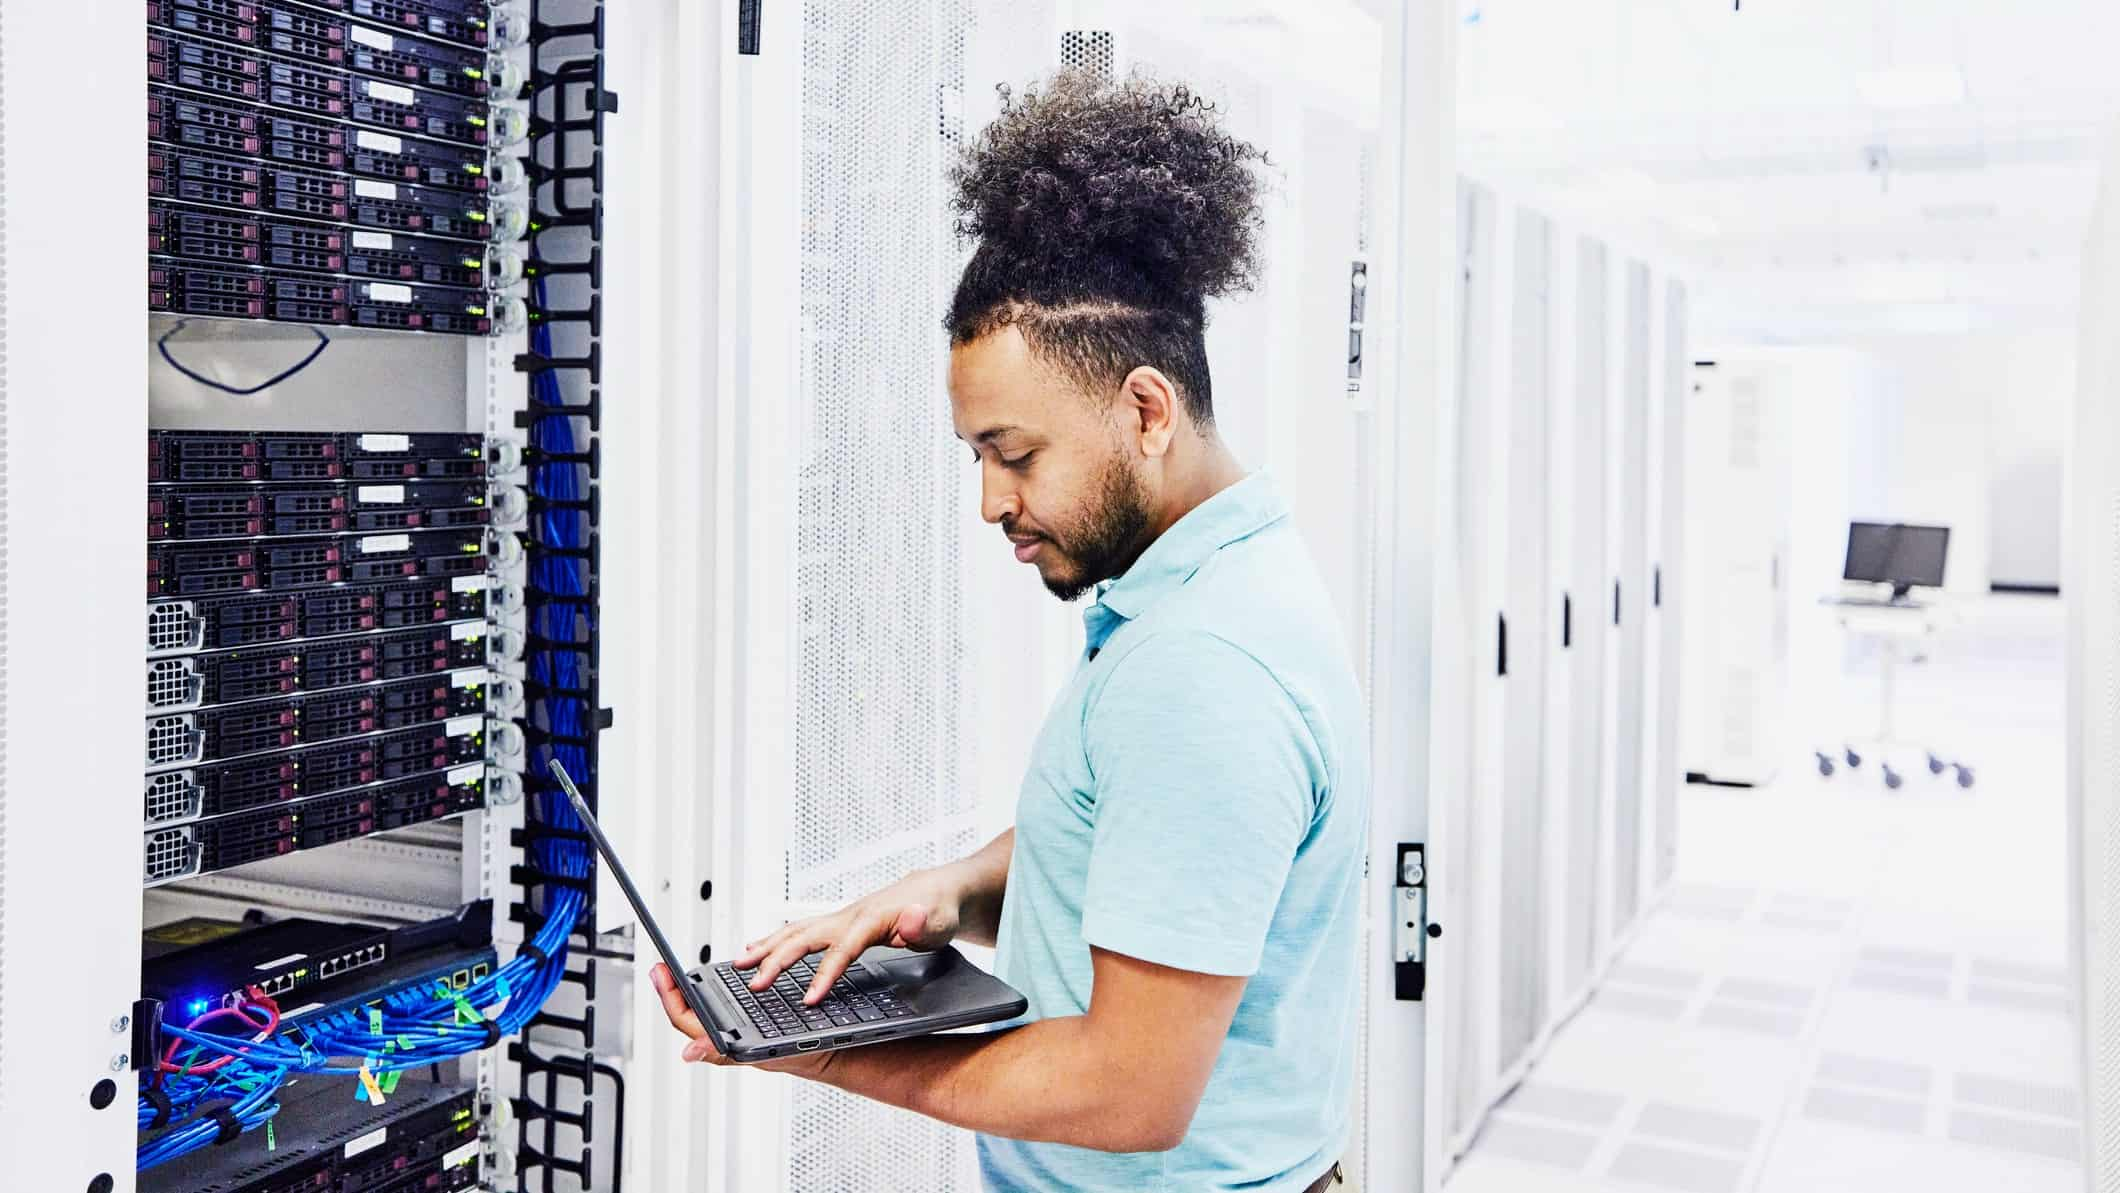 Cybersecurity company employee looks at laptop while standing near server room